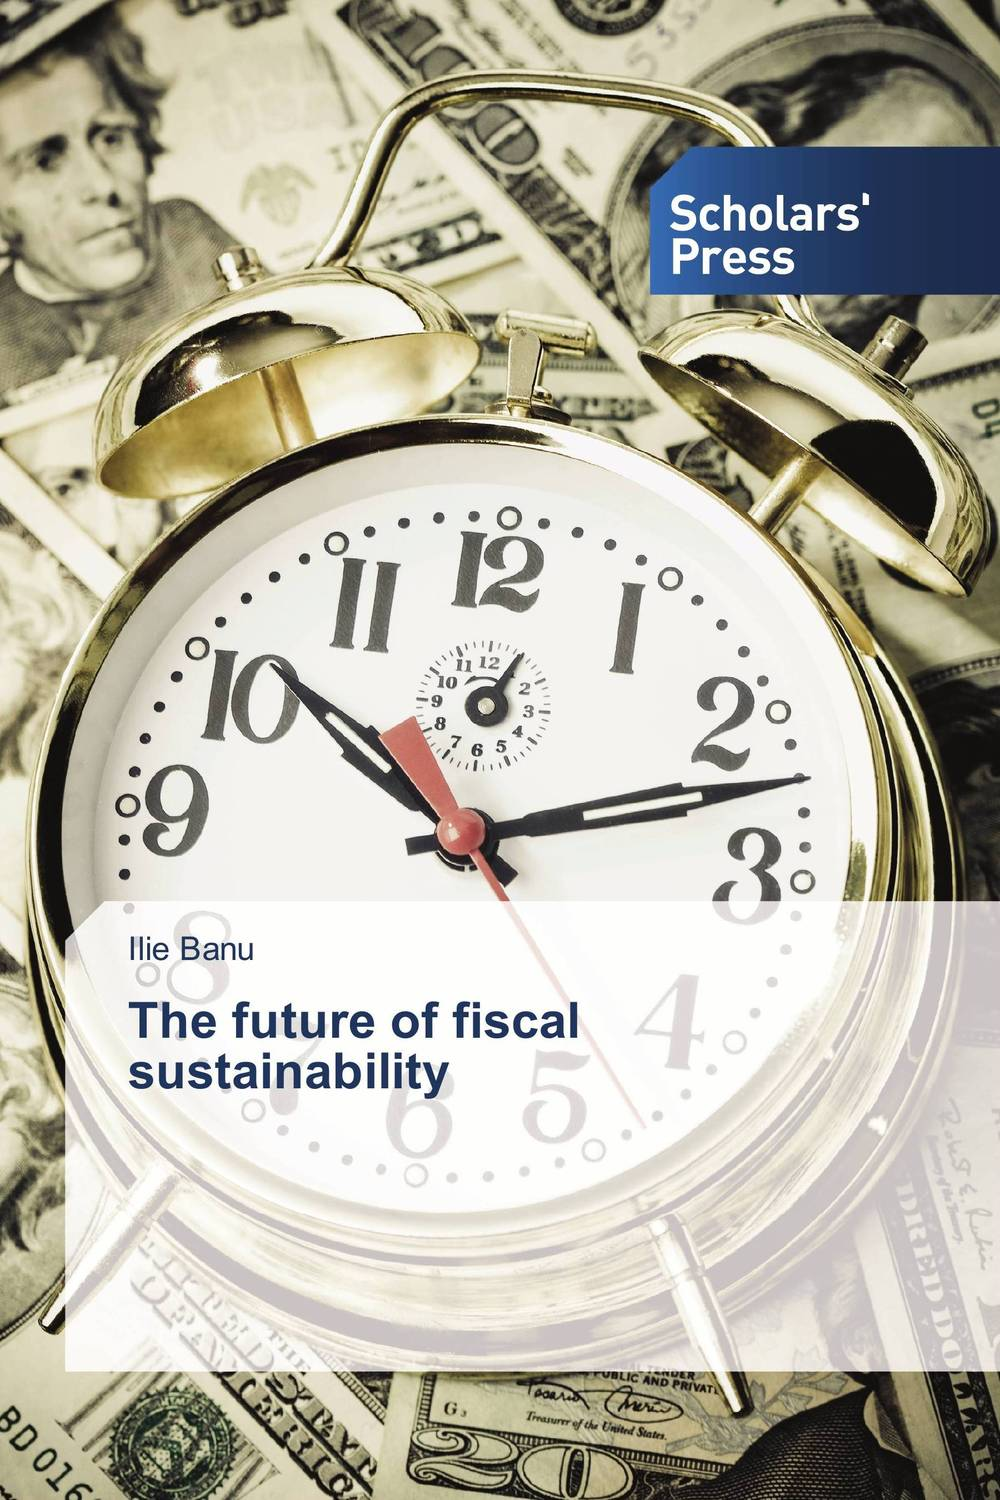 The future of fiscal sustainability